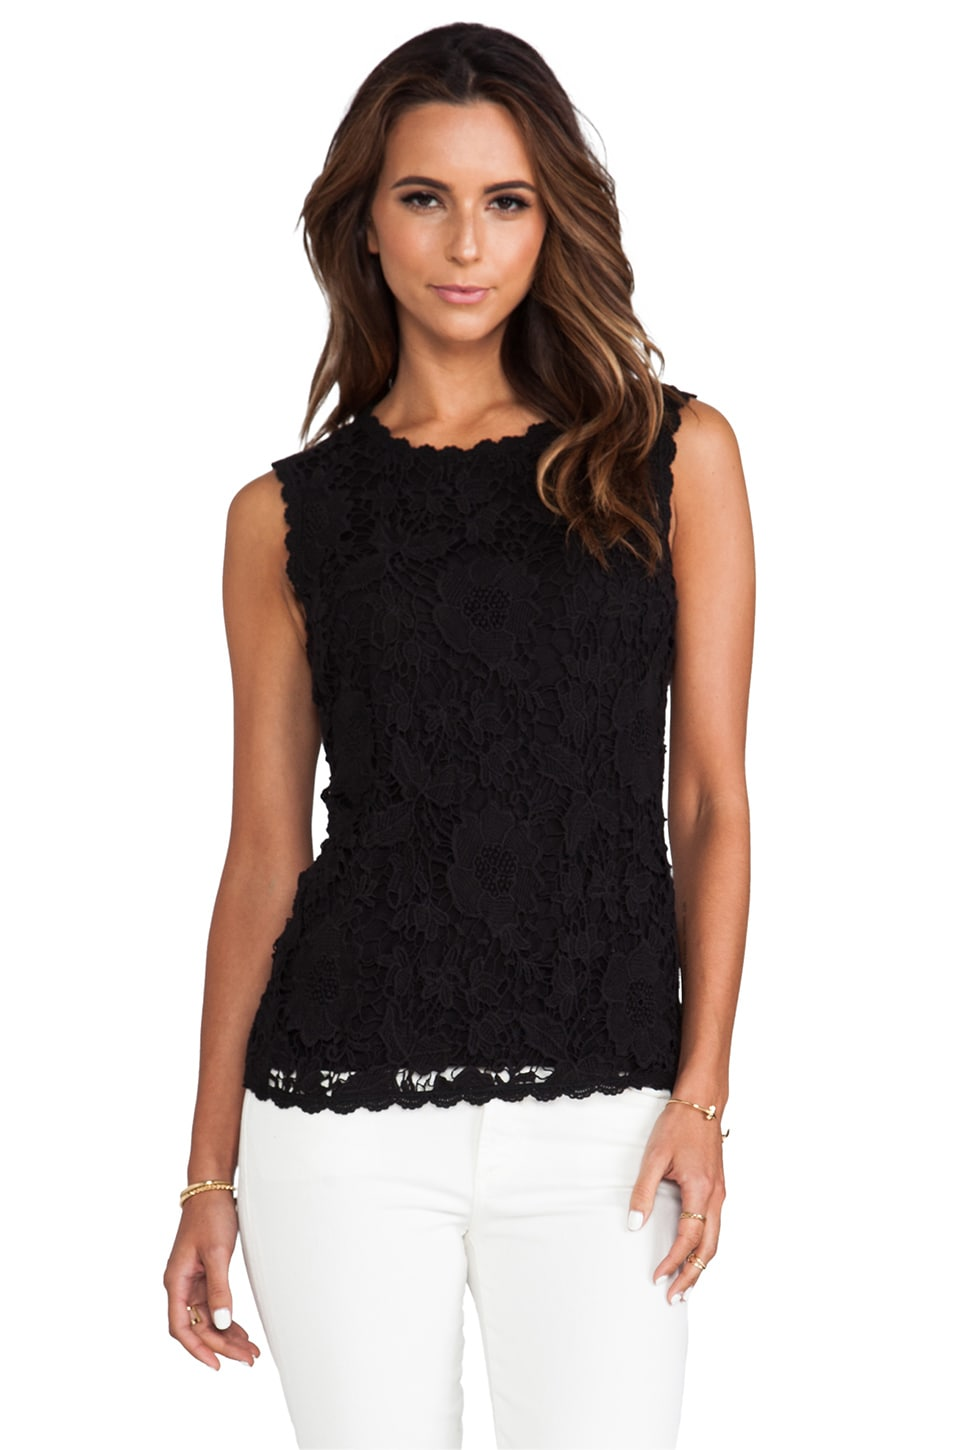 Velvet by Graham & Spencer Shireen Cotton Crochet Lace Top in Black